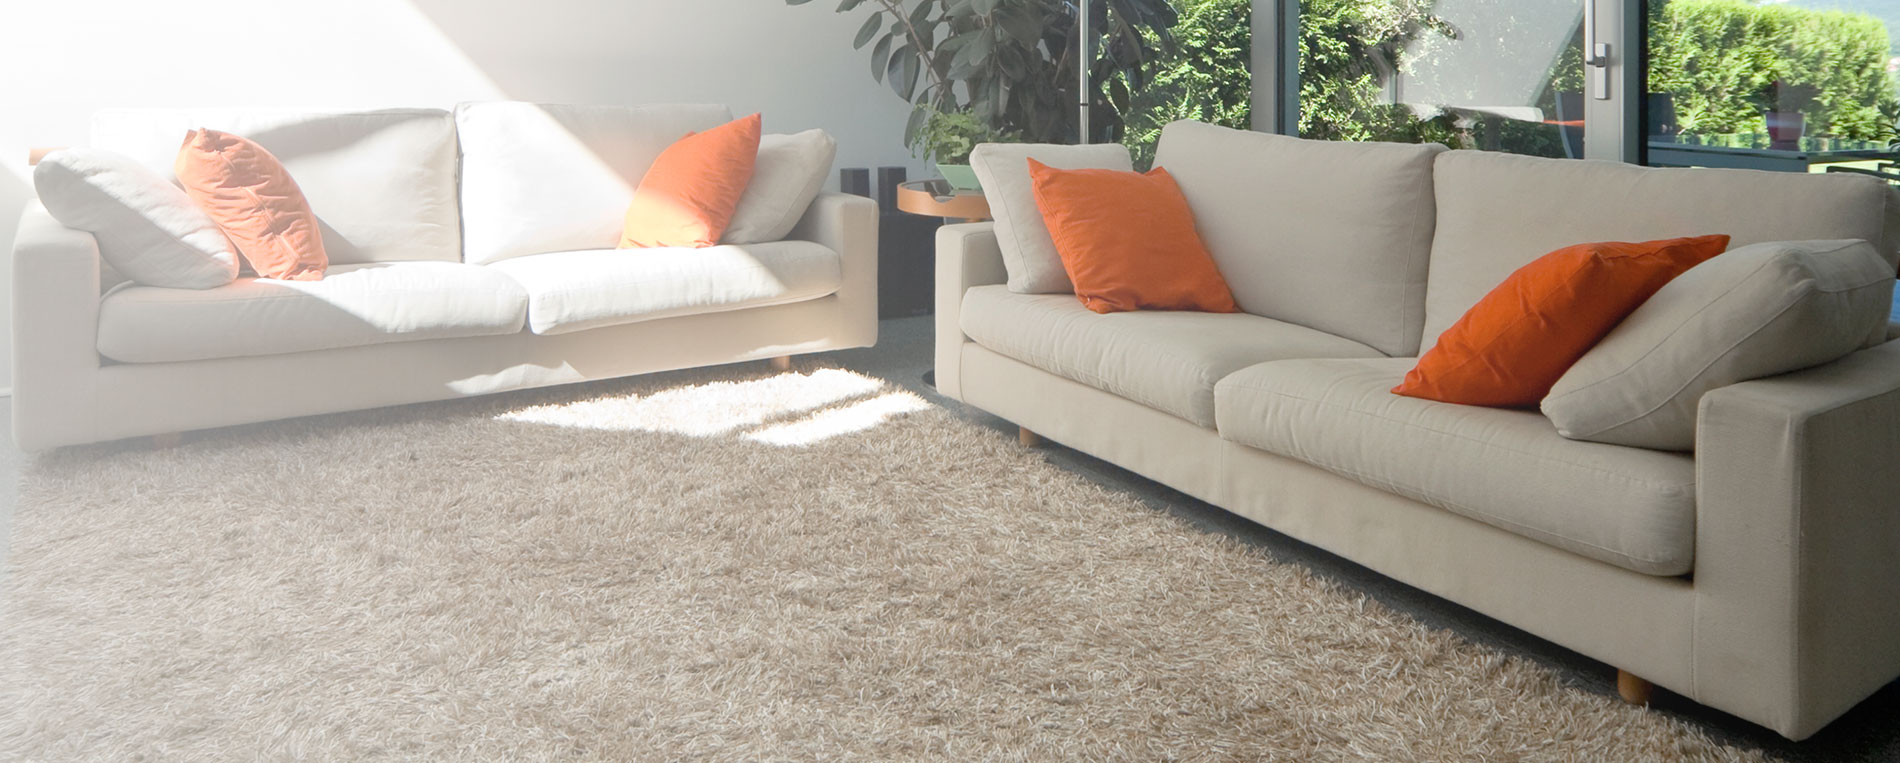 Sofa Service Sofa Cleaners Carpet Cleaning Los Angeles Ca